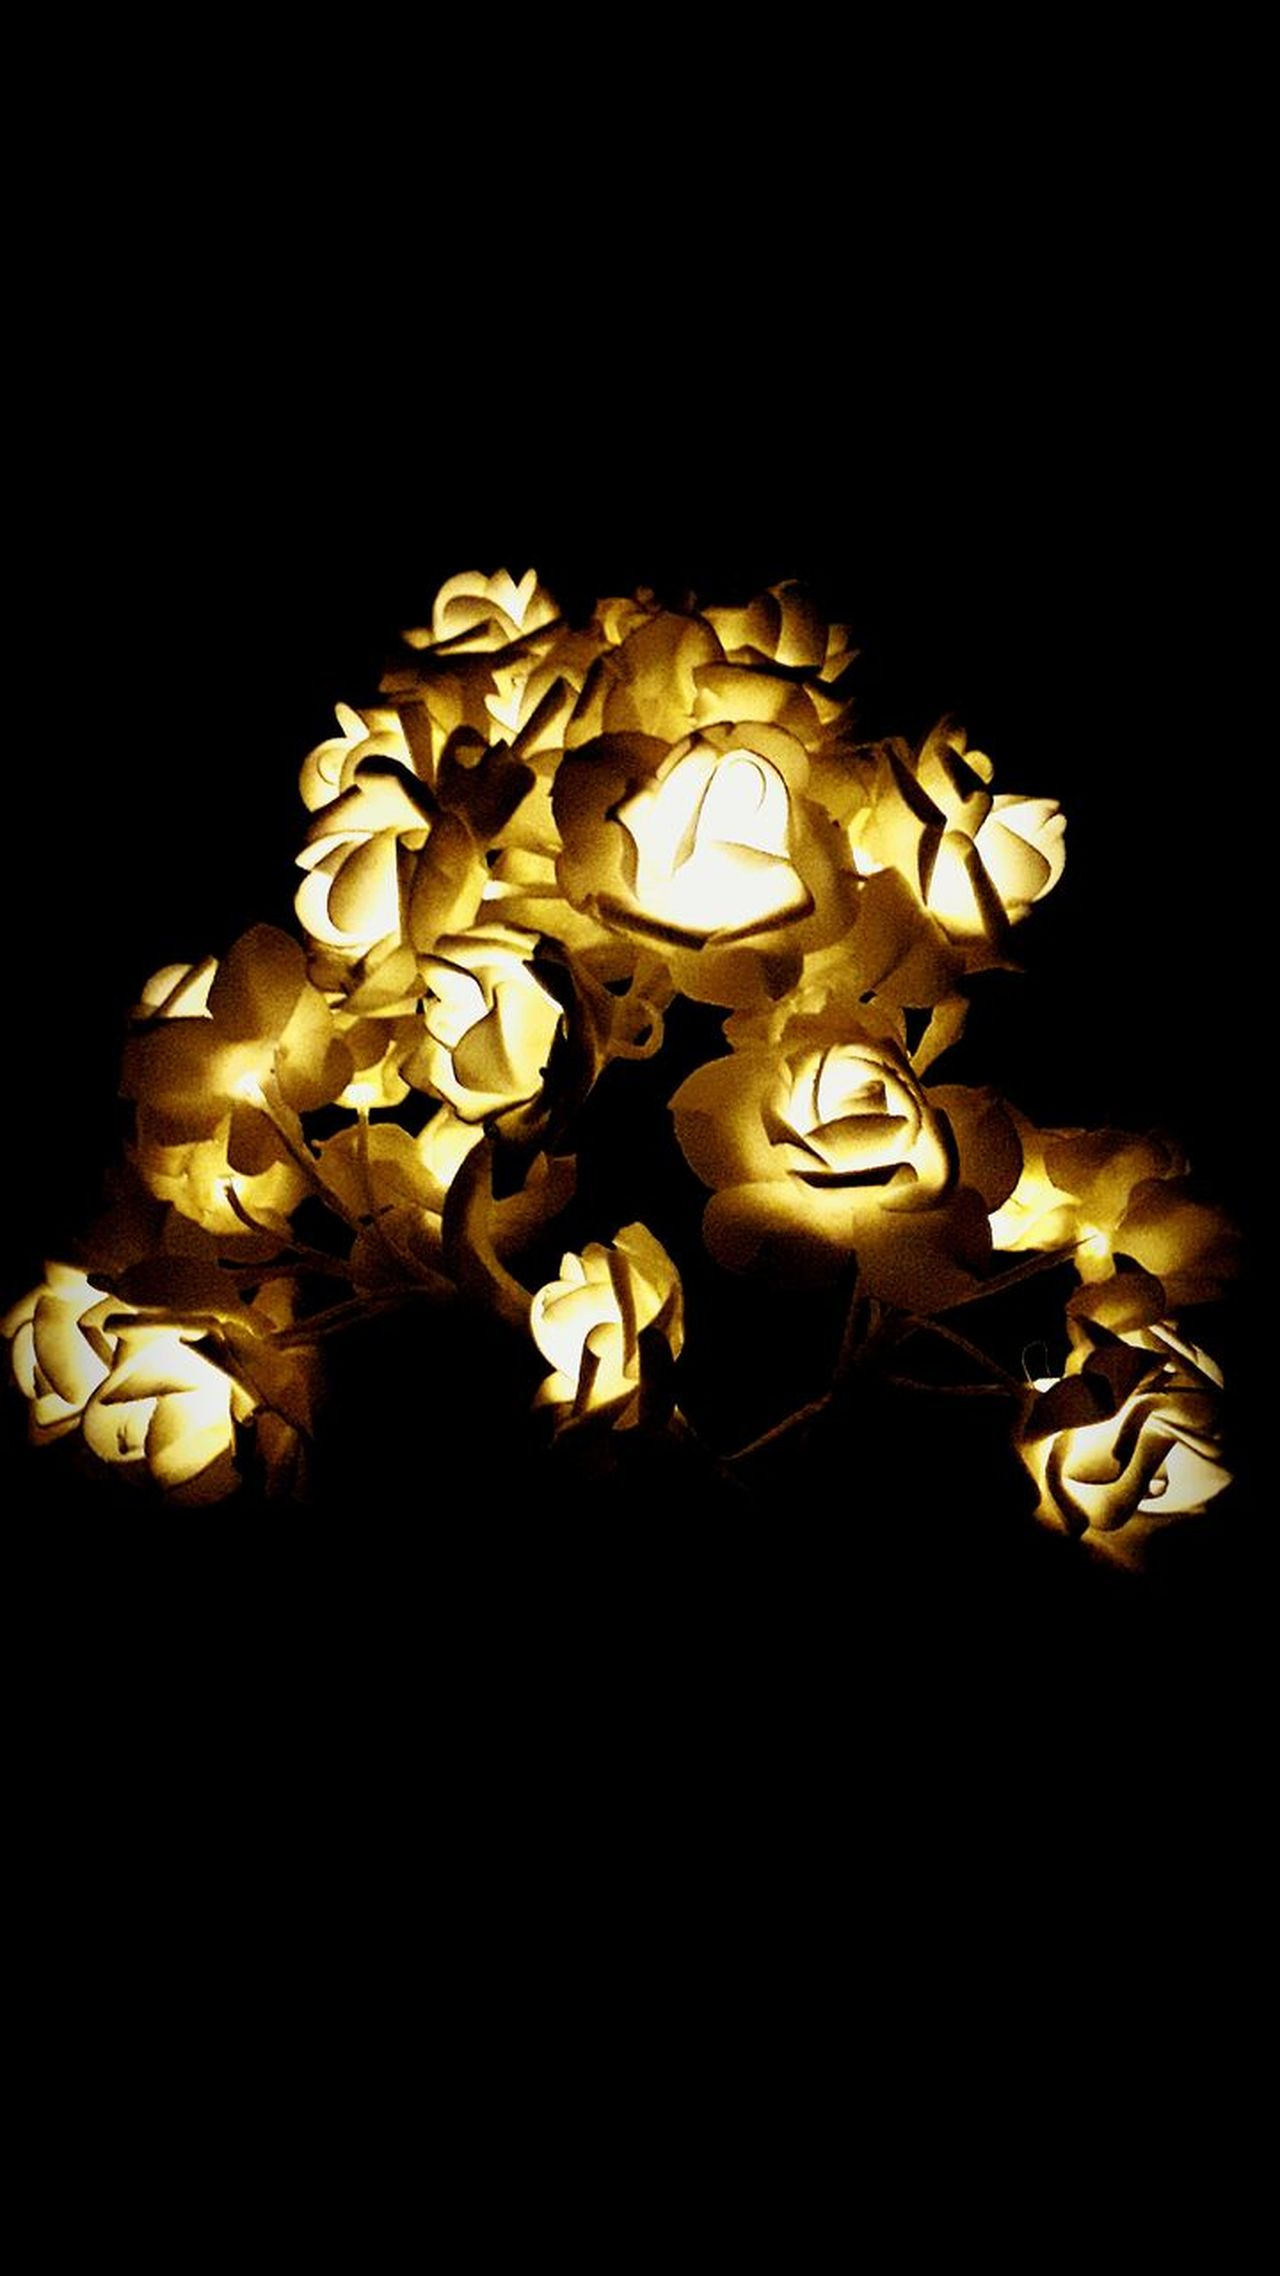 Illuminated Gold Colored No People Savings Black Background Gold Chinese New Year Currency Close-up Christmas Decoration Night Indoors  Representing rose Rose Collection Outdoors Full Frame Day Nature Roses🌹rRoses, Flowers, Nature, Garden, Bouquet, Love,